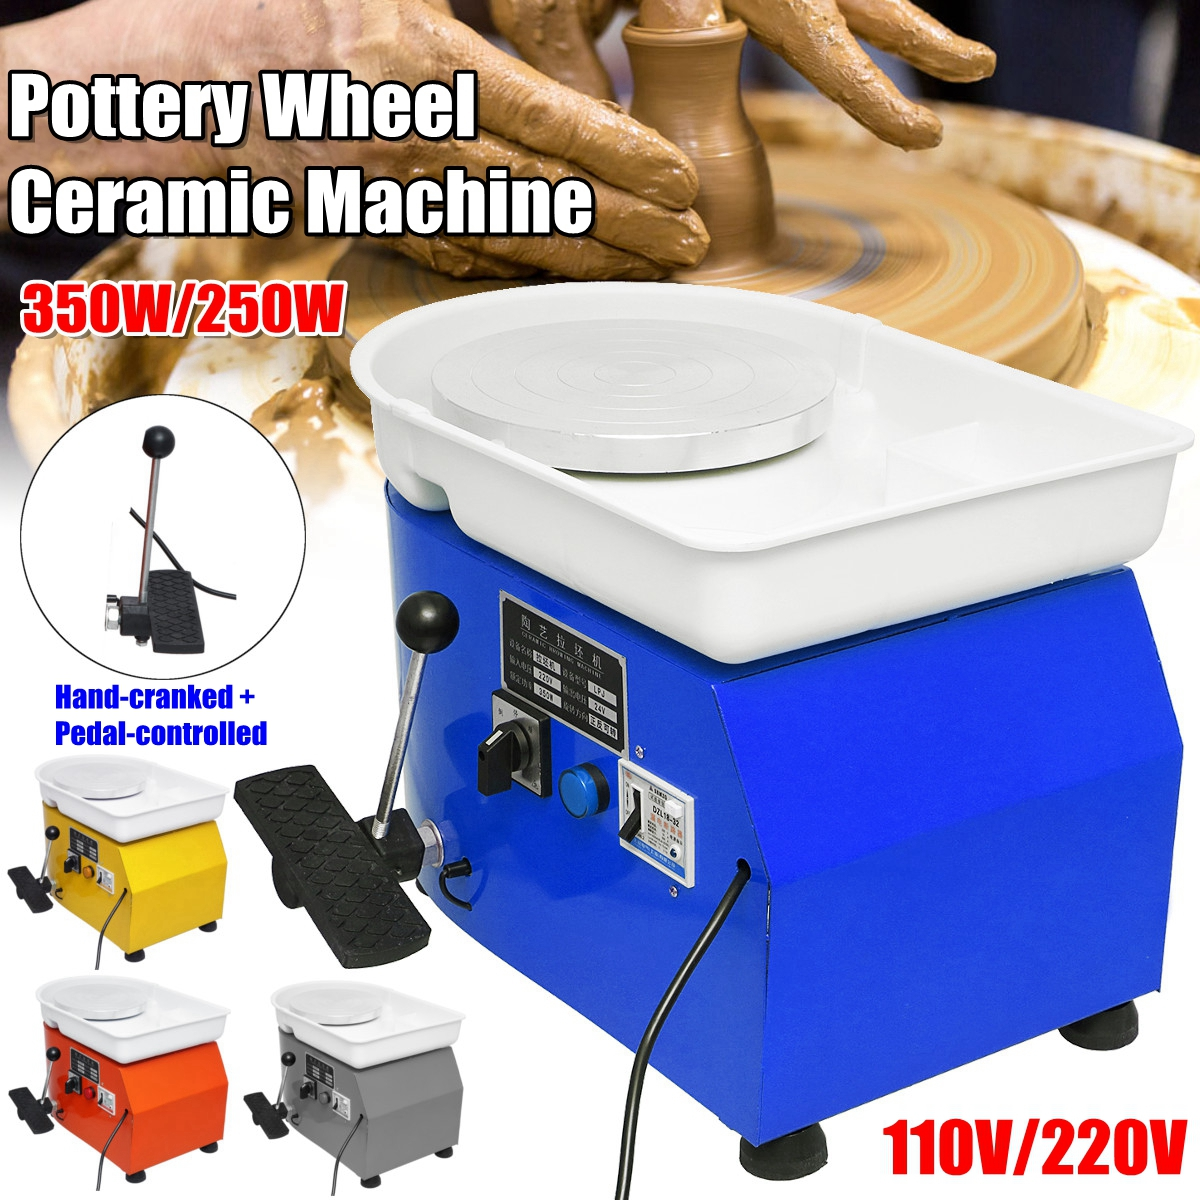 110V/220V 250W/350W Pottery Forming Machine Electric Pottery Wheel DIY Clay Potter Art Tool with Tray For Ceramic Work Ceramics